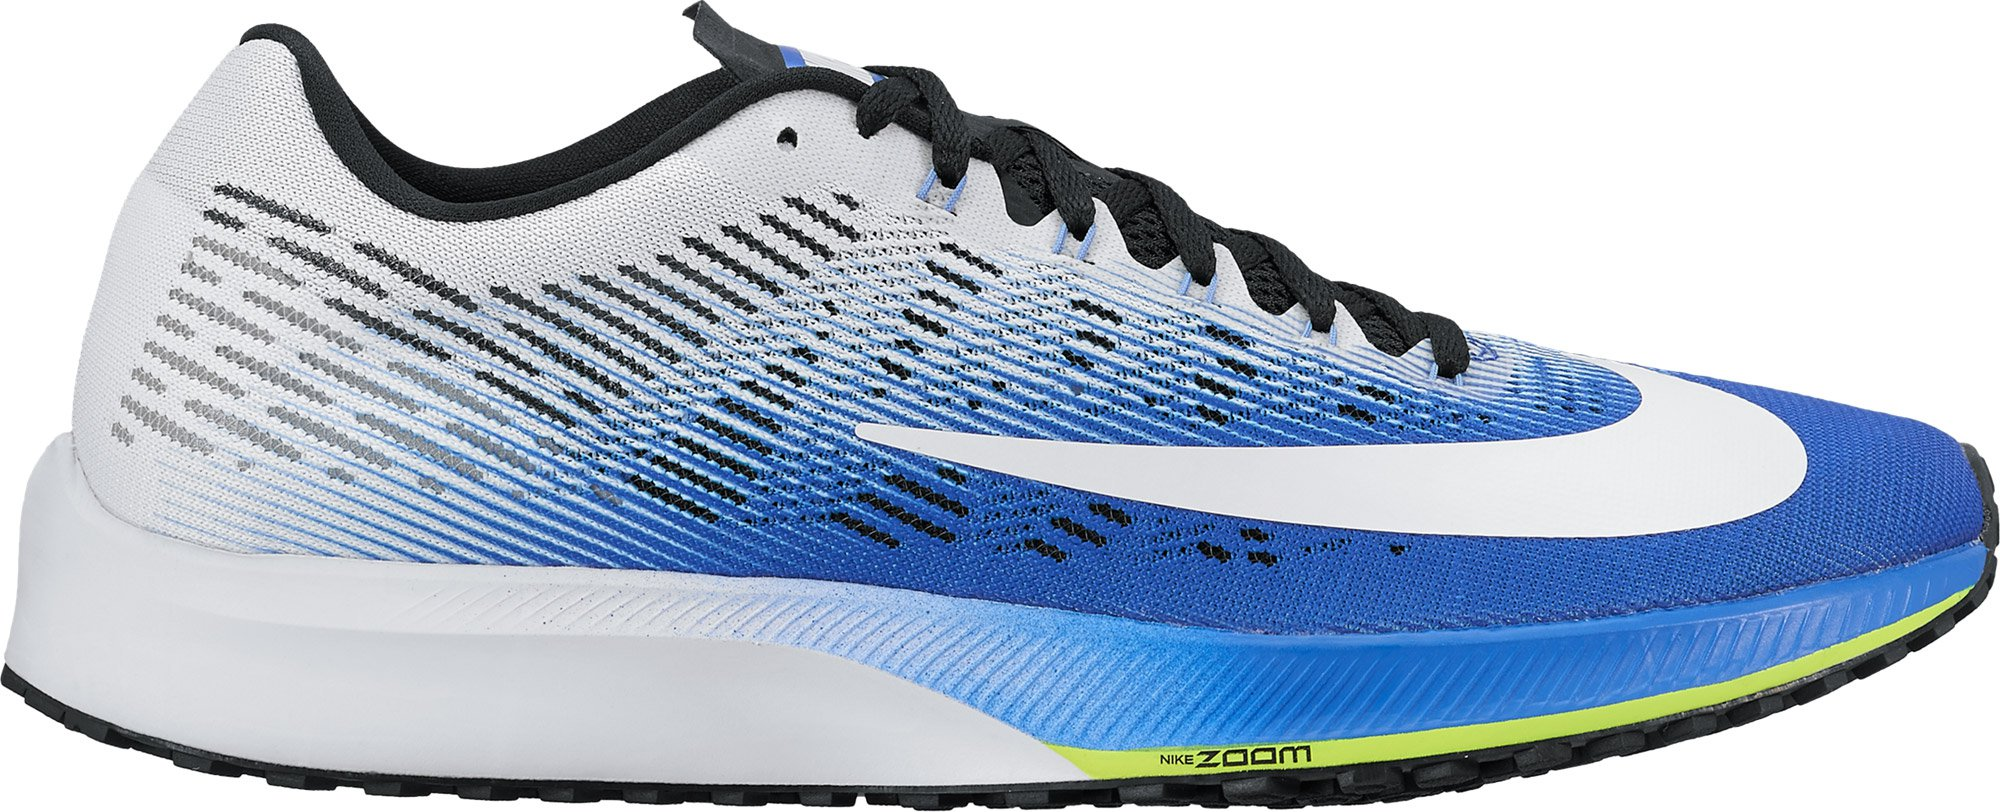 san francisco 65d25 66d4f Кроссовки Nike Air Zoom Elite 9. Артикул 863769 400